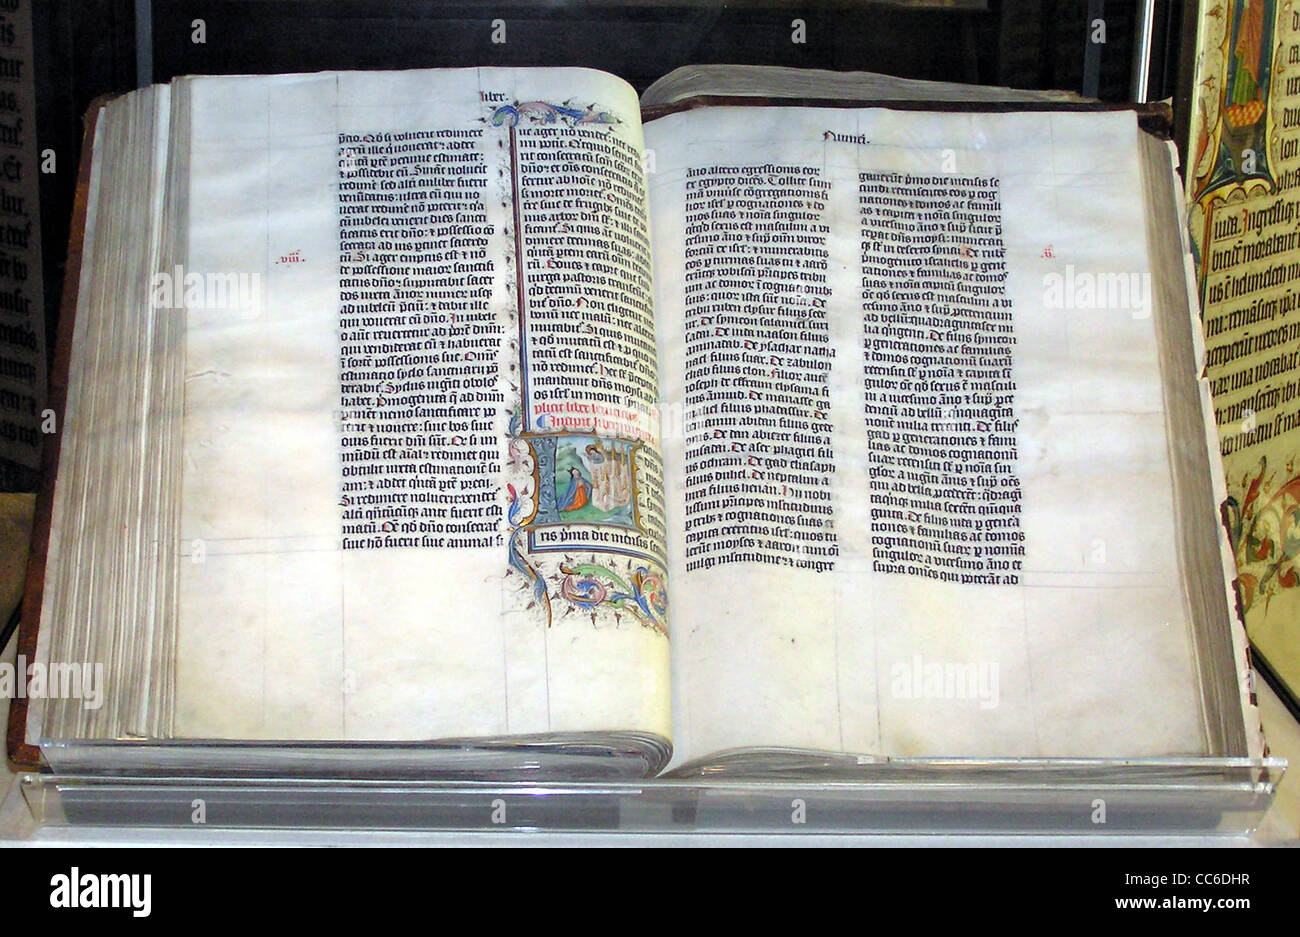 Bible handwritten in Latin, on display in Malmesbury Abbey, Wiltshire, England. - Stock Image